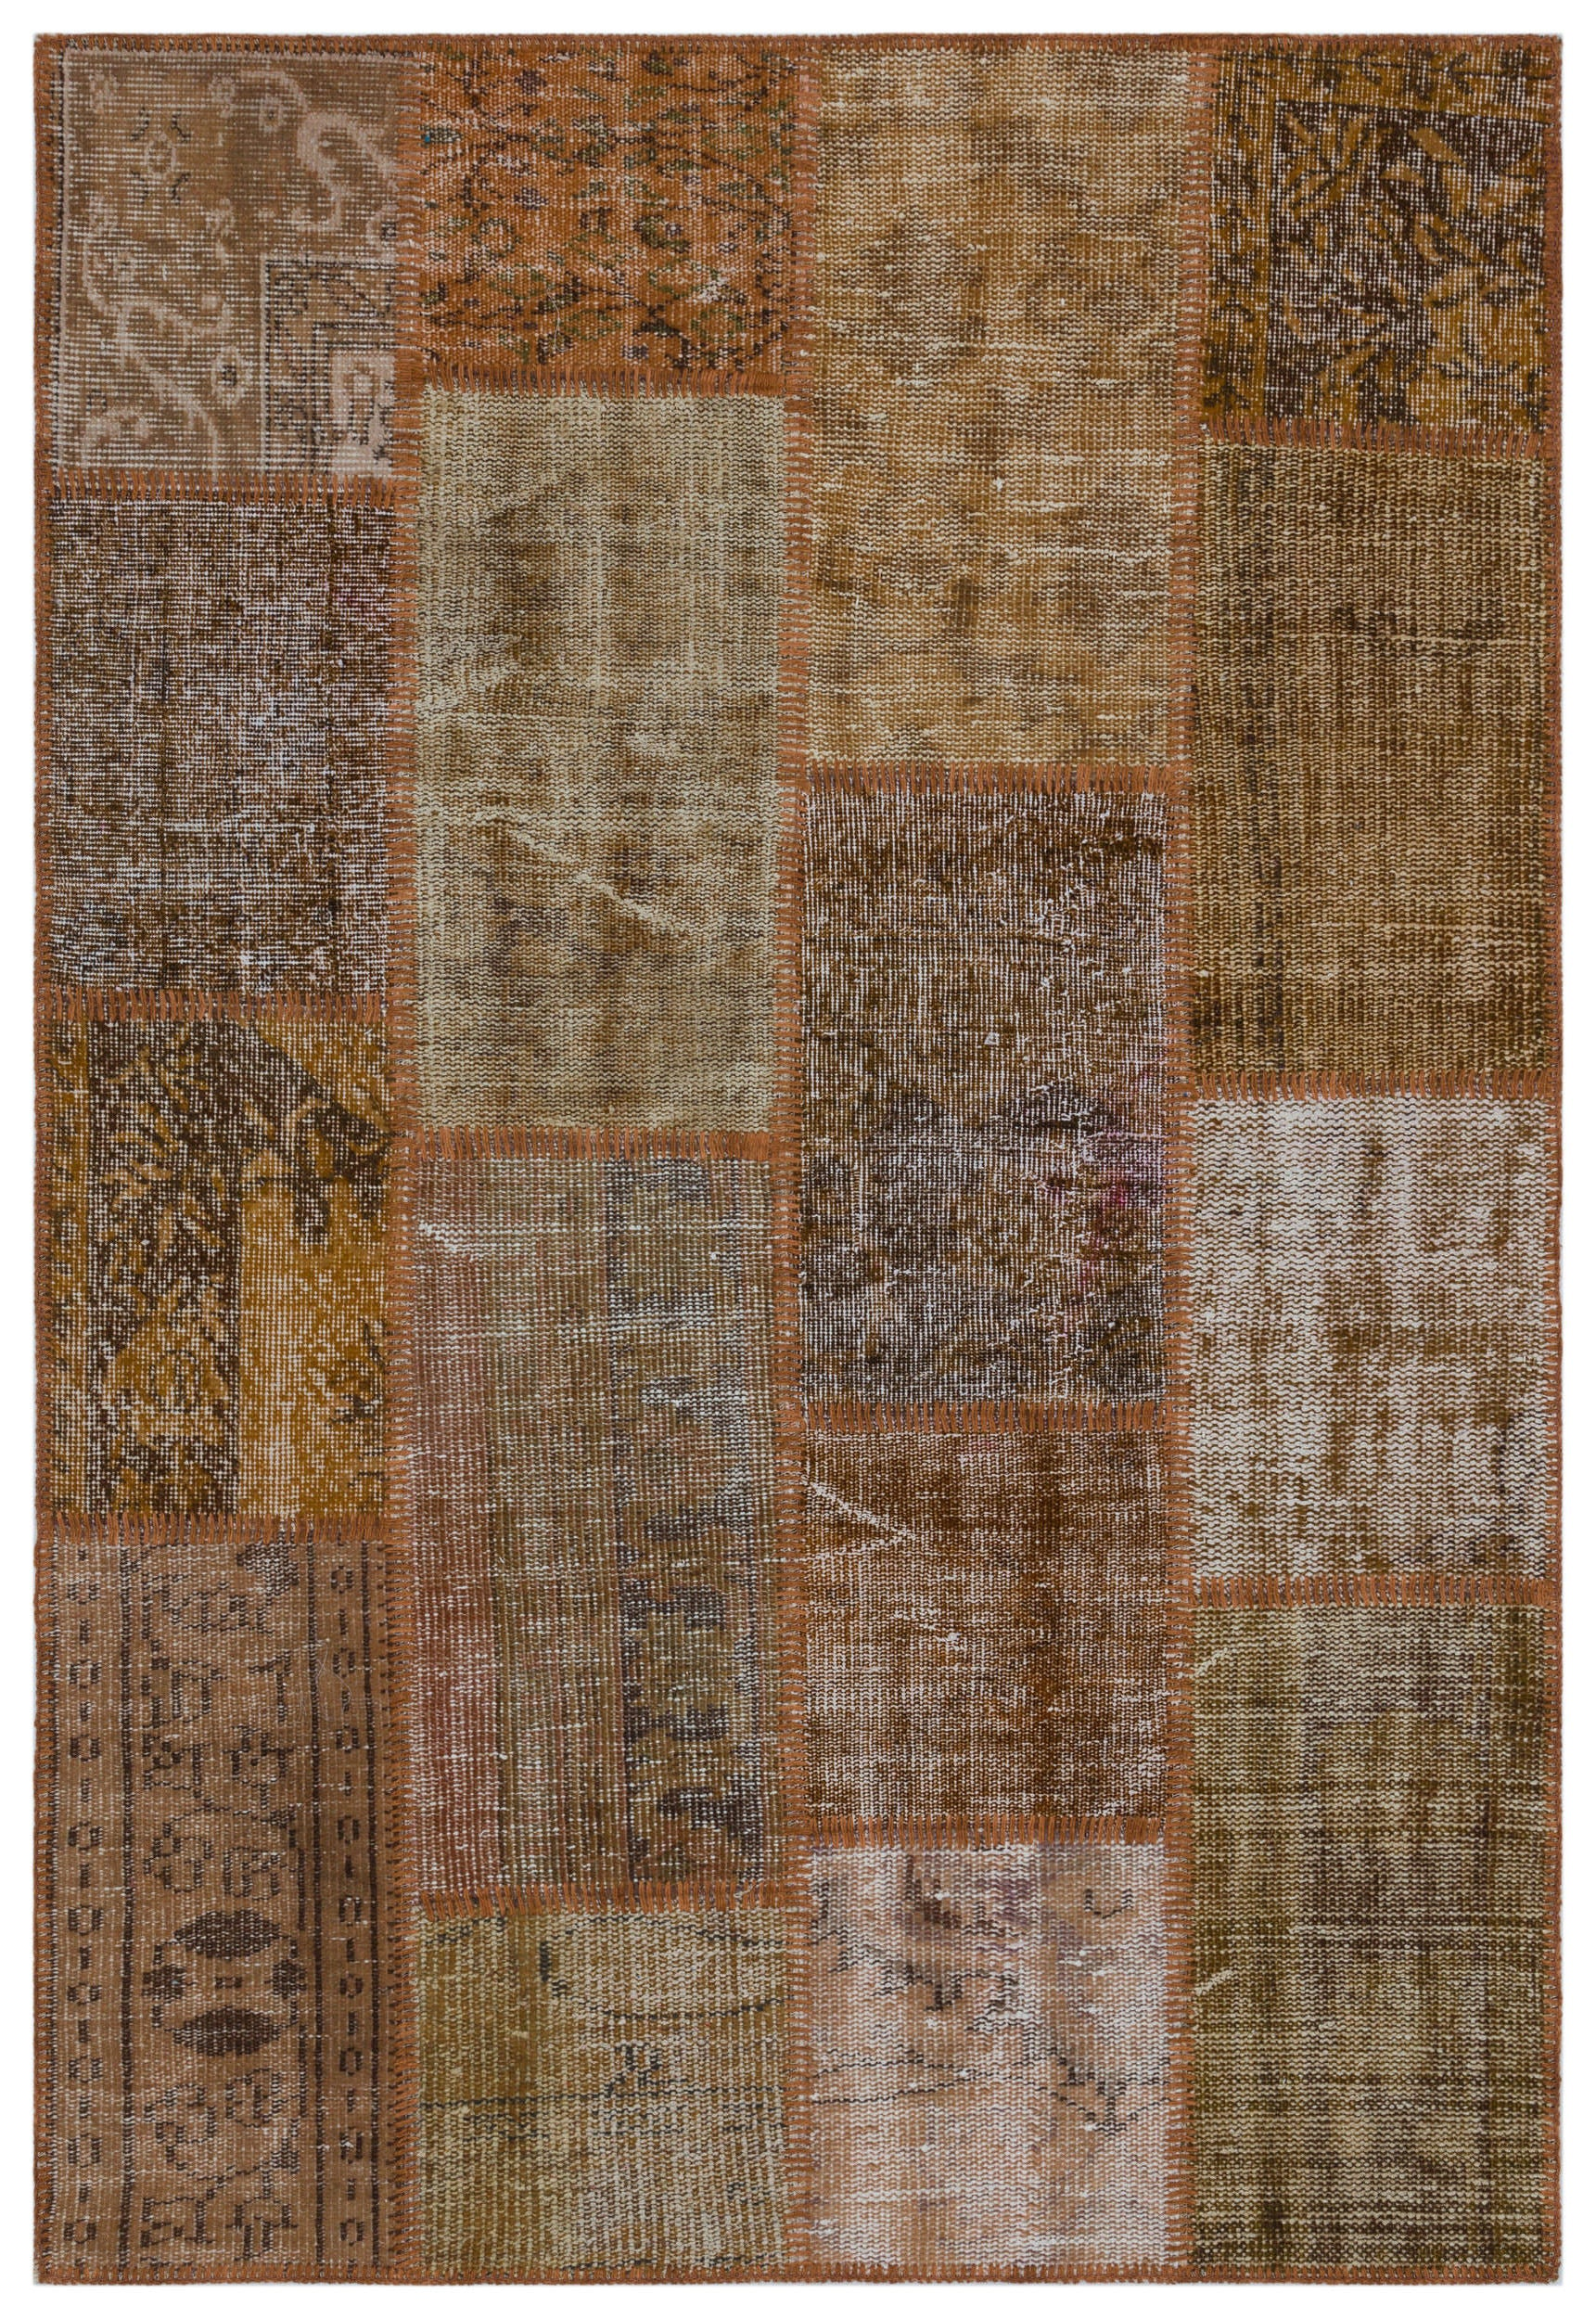 Brown Over Dyed Patchwork Unique Rug 3'11'' x 5'11'' ft 120 x 180 cm